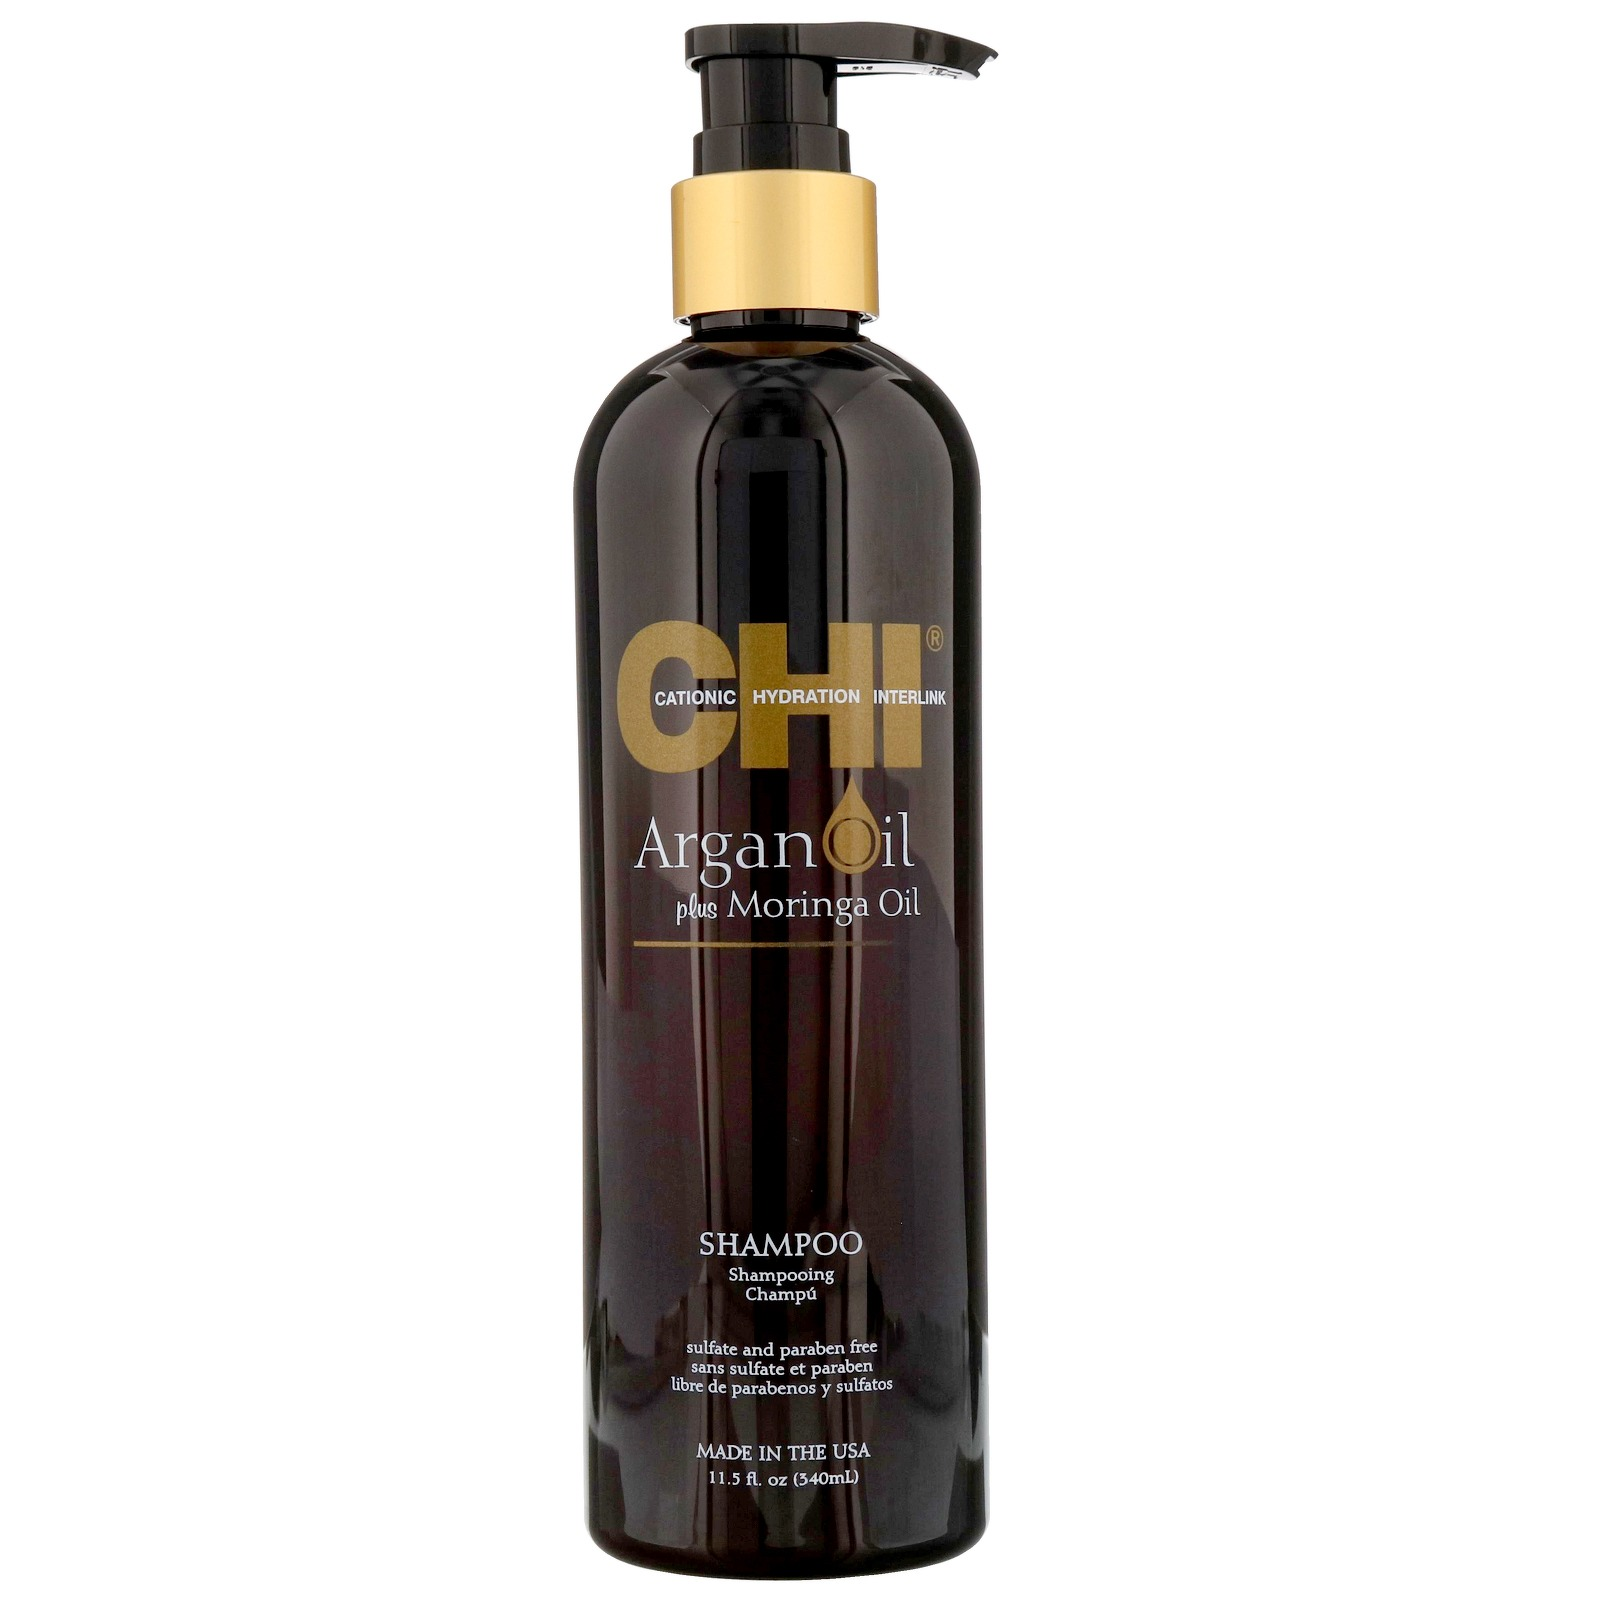 CHI Argan Oil Plus Moringa Oil Shampoo 340ml